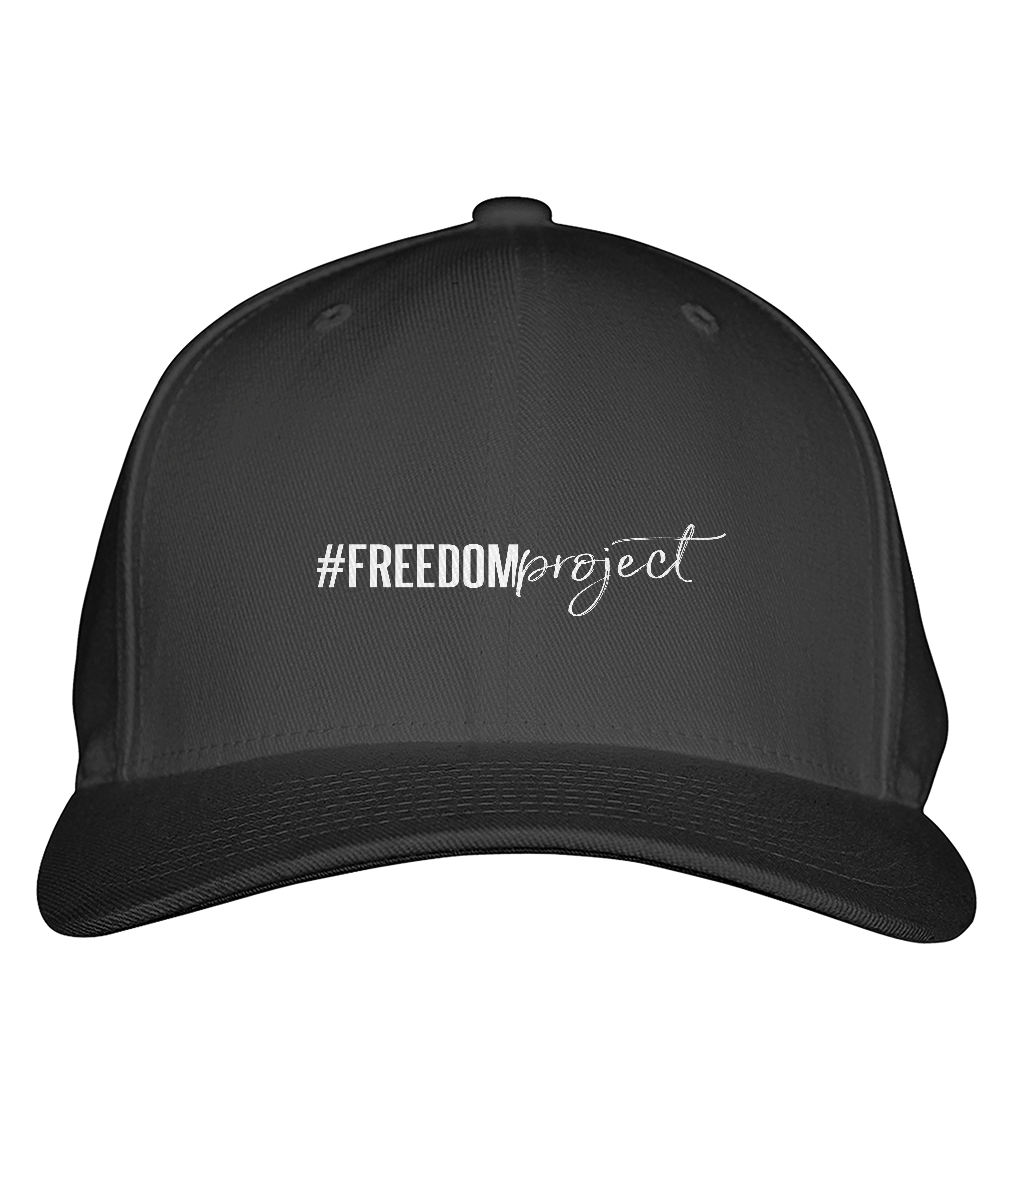 #FREEDOM Project Black Cap